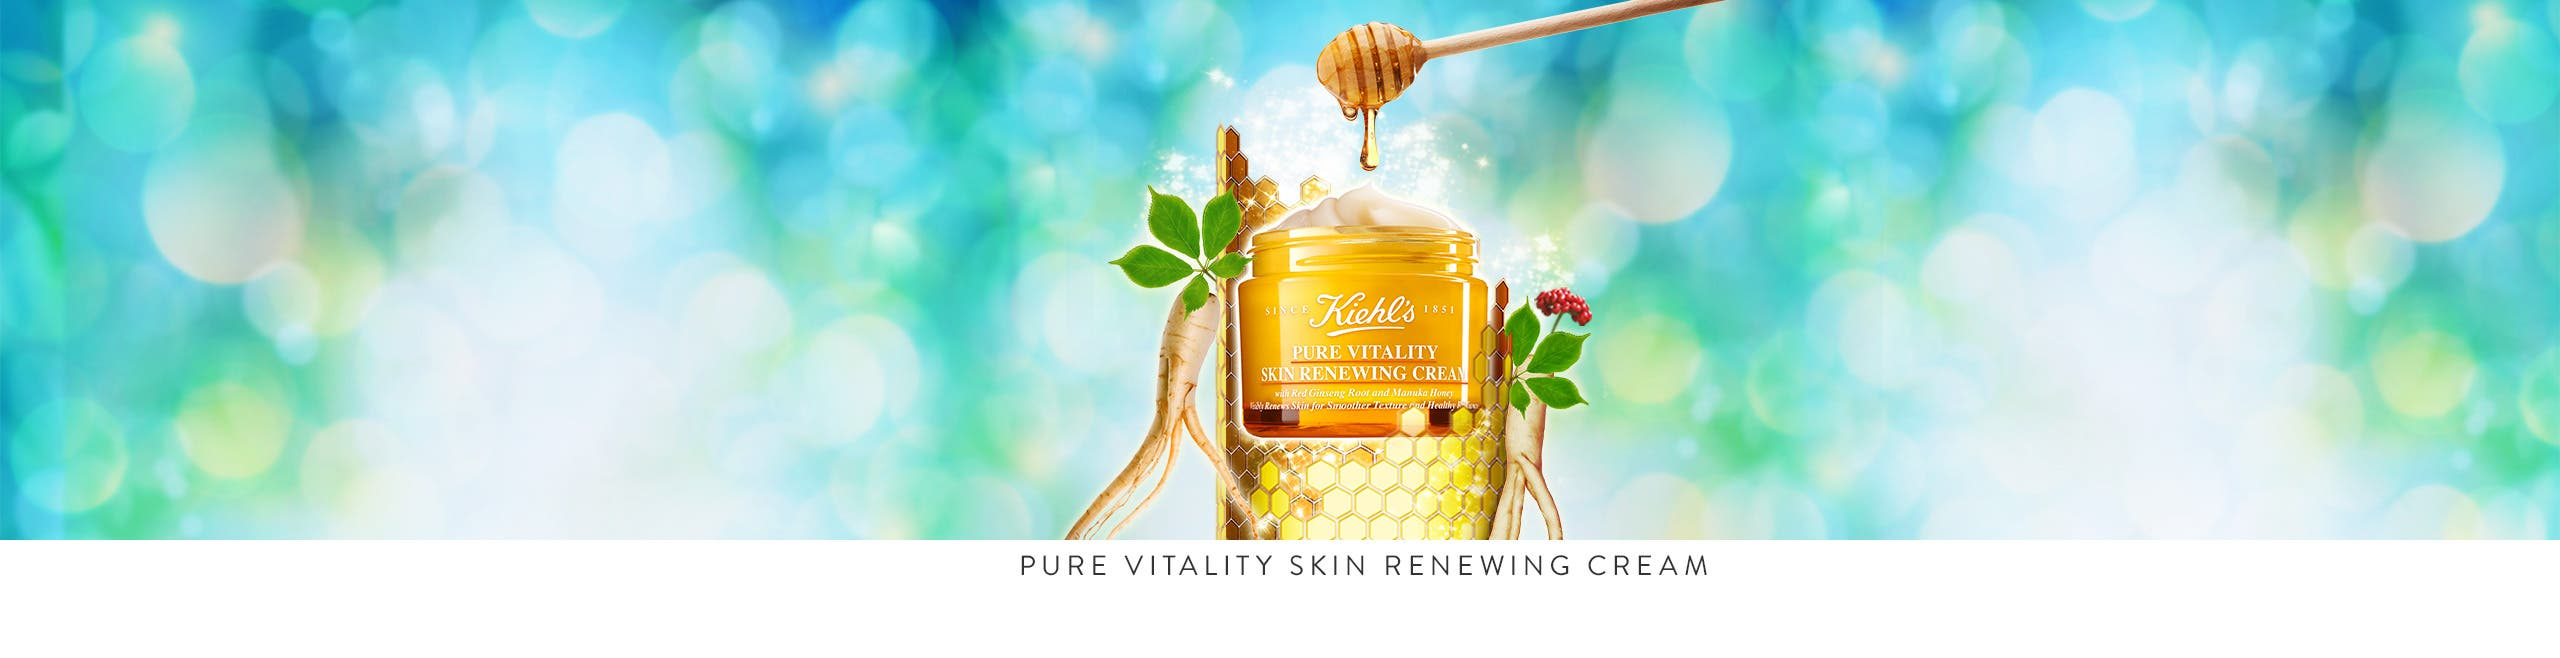 Kiehl's Pure Vitality Skin Renewing Cream.